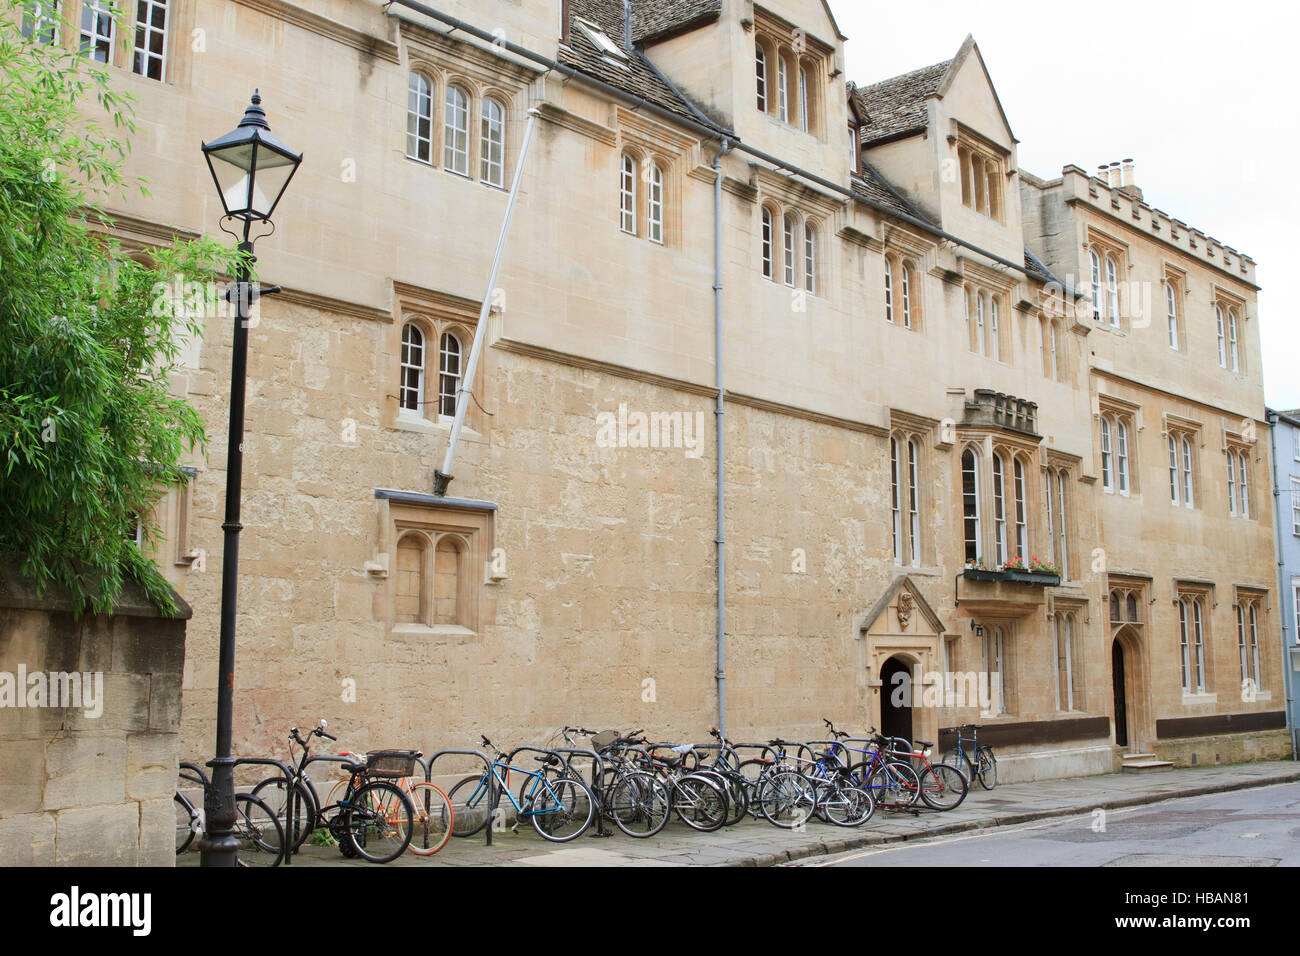 St. Edmund Hall in Queen's Lane, Oxford, England. - Stock Image